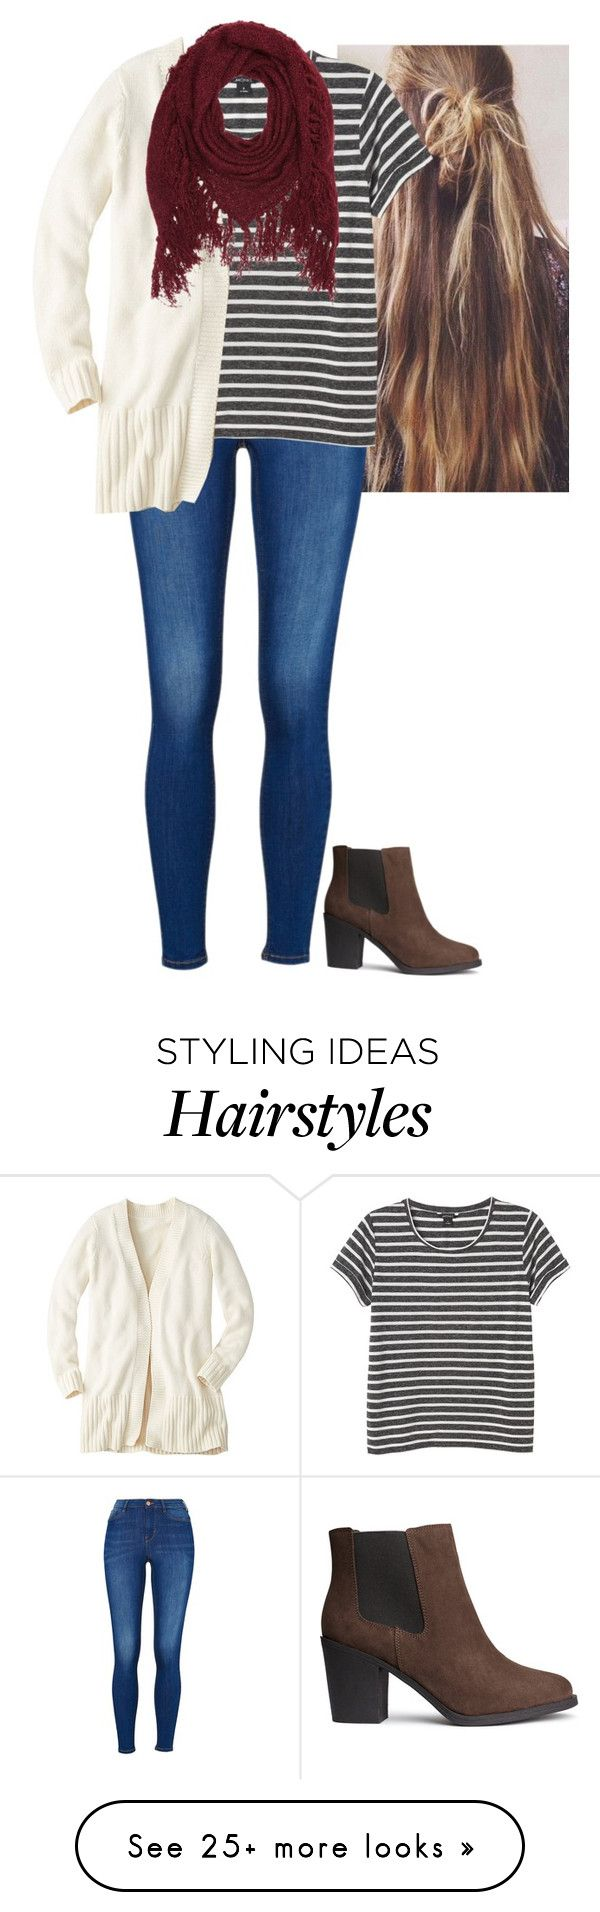 """Always Wear Your Invisible Crown"" by morgantaylor37 on Polyvore featuring Monki, Charlotte Russe and H&M"